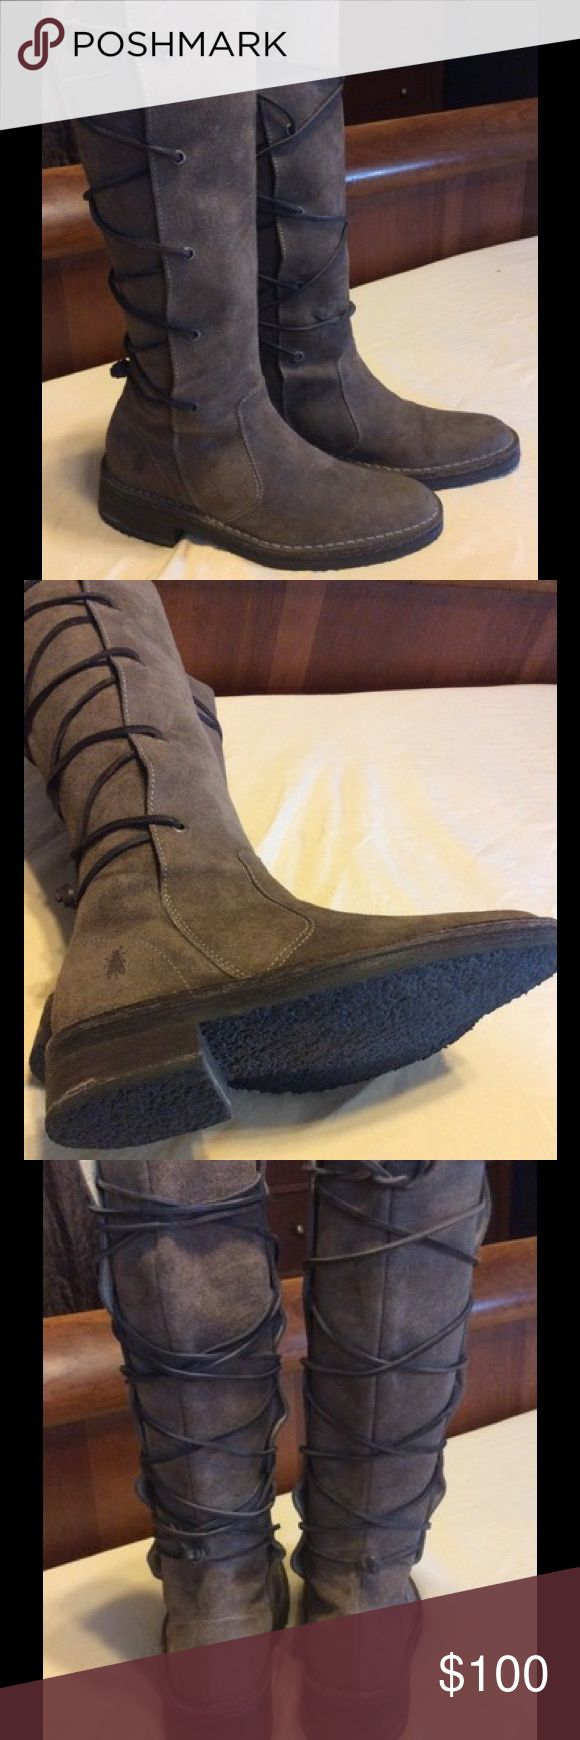 Fly of London Brown Suede Boots Fly of London brown suede lace up boots.  Size 7 1/2 in like new condition Fly London Shoes Lace Up Boots